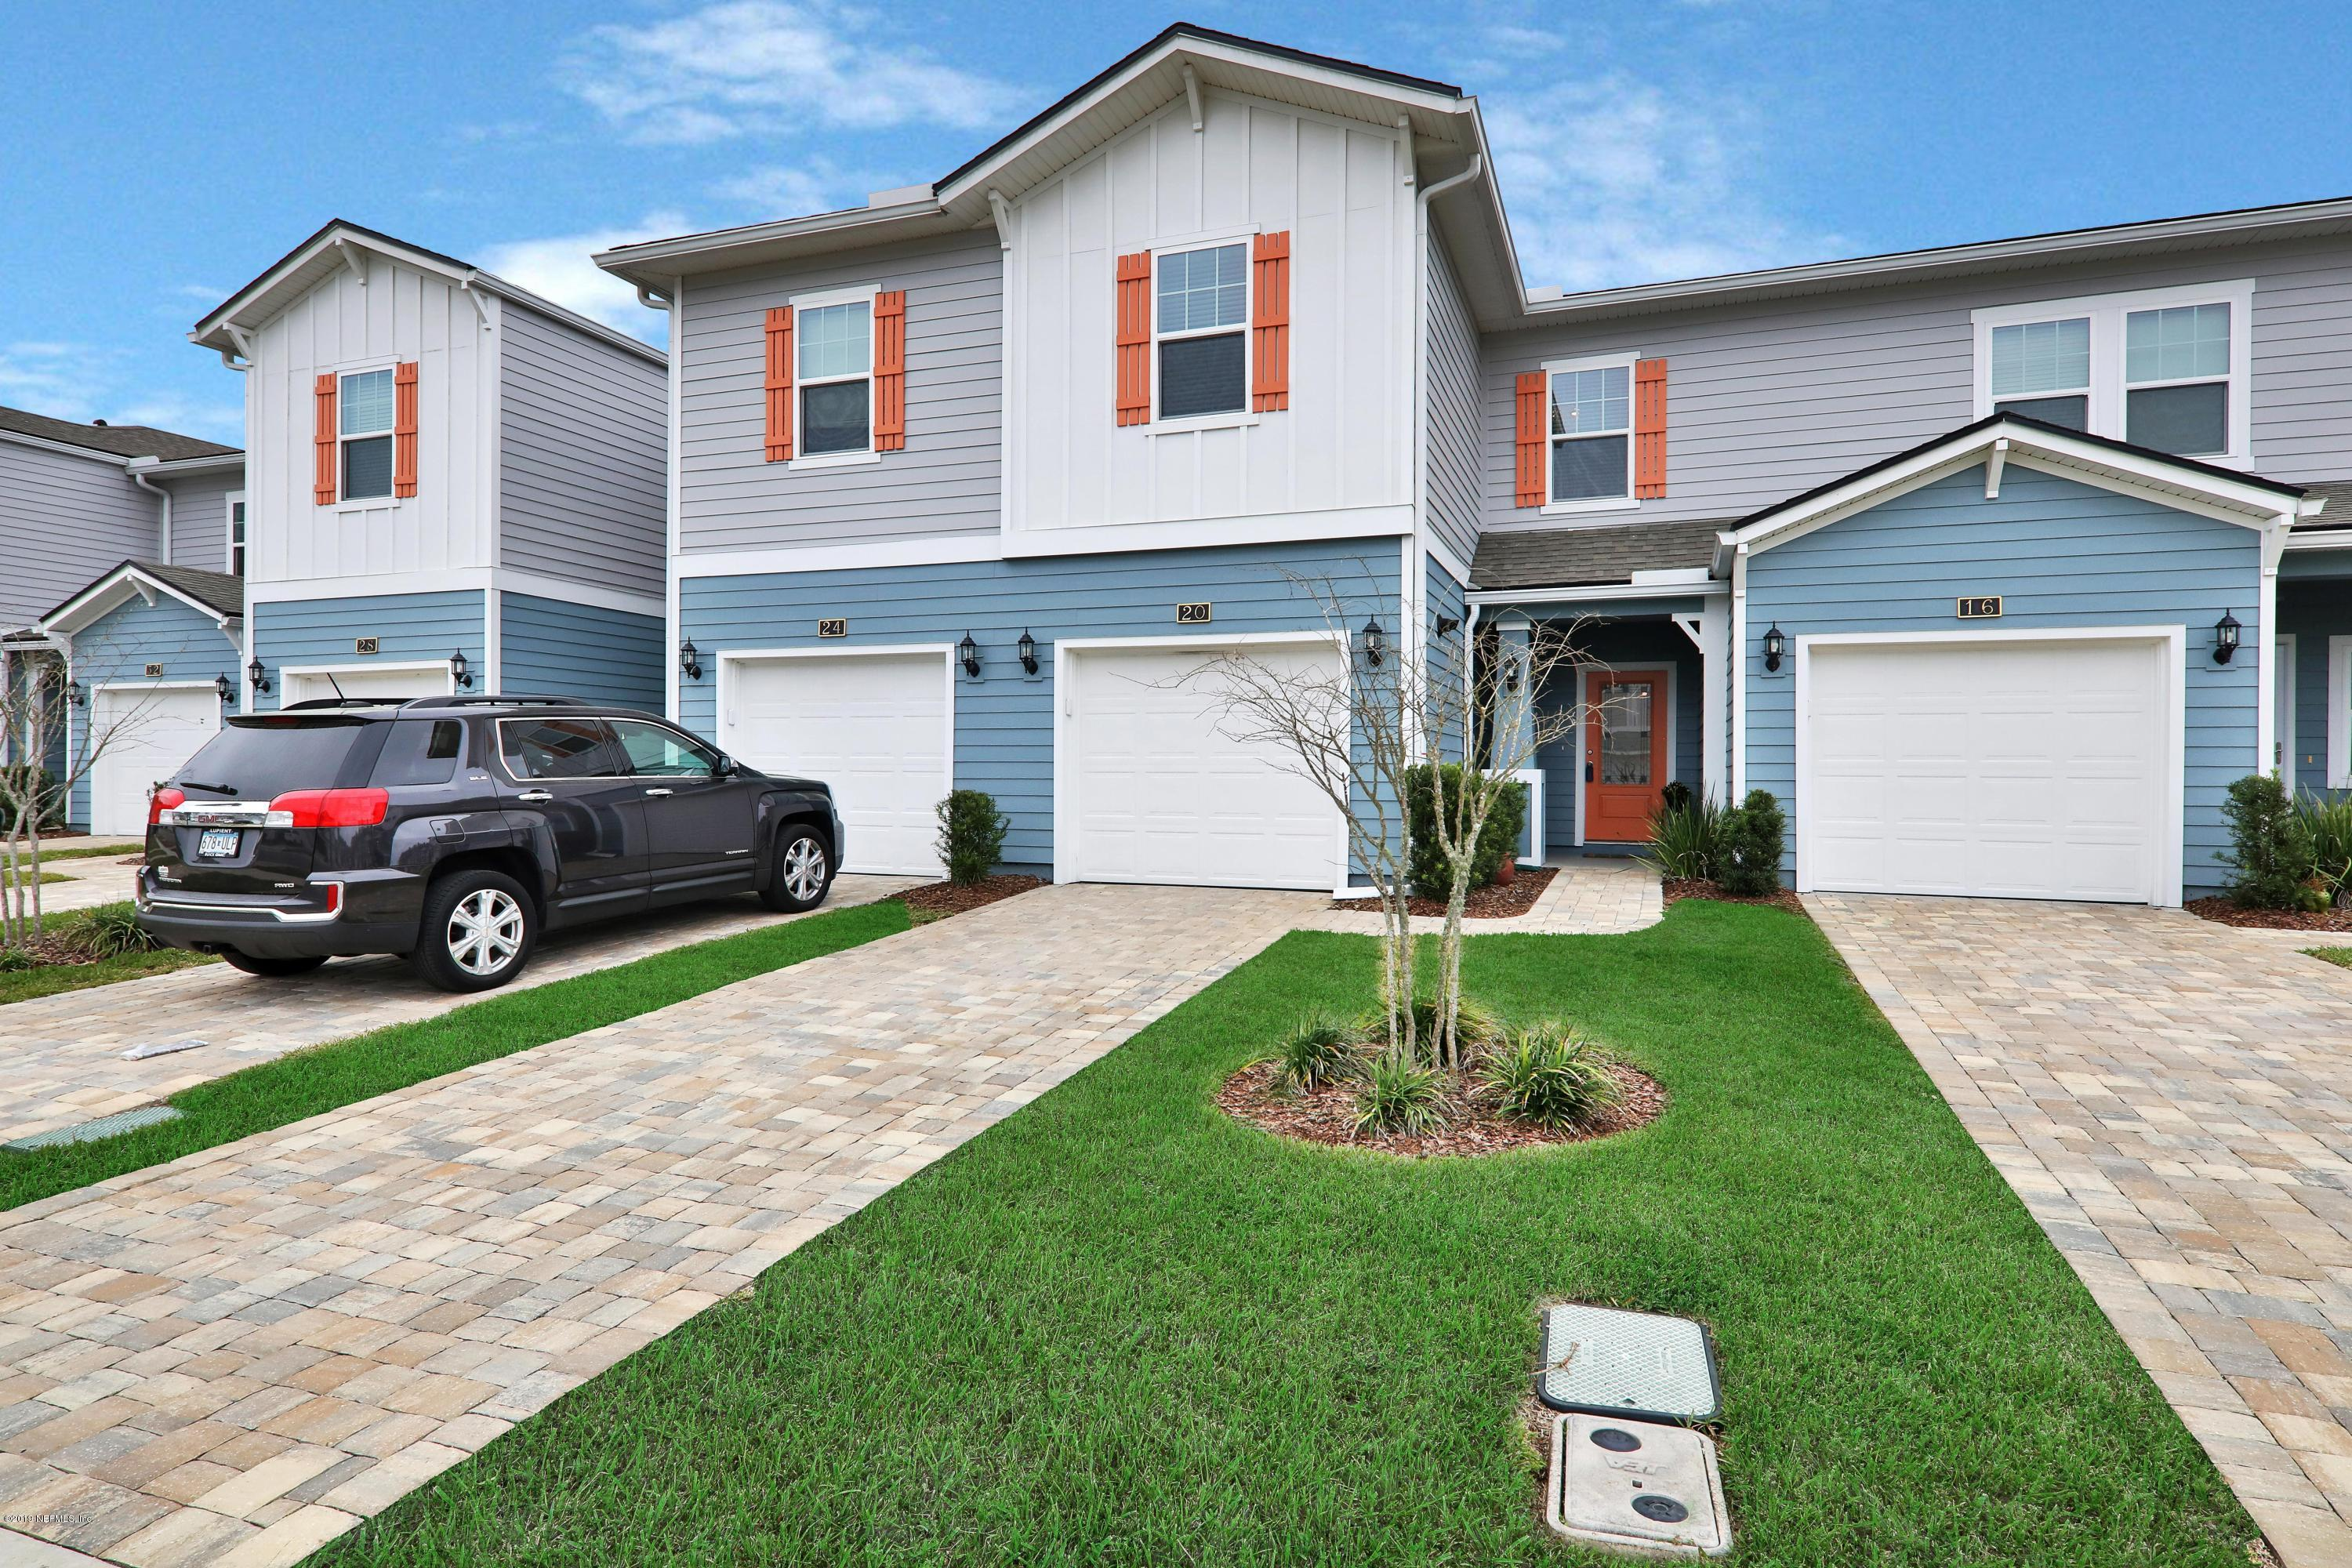 20 PINDO PALM, PONTE VEDRA, FLORIDA 32081, 3 Bedrooms Bedrooms, ,2 BathroomsBathrooms,Residential - single family,For sale,PINDO PALM,978517